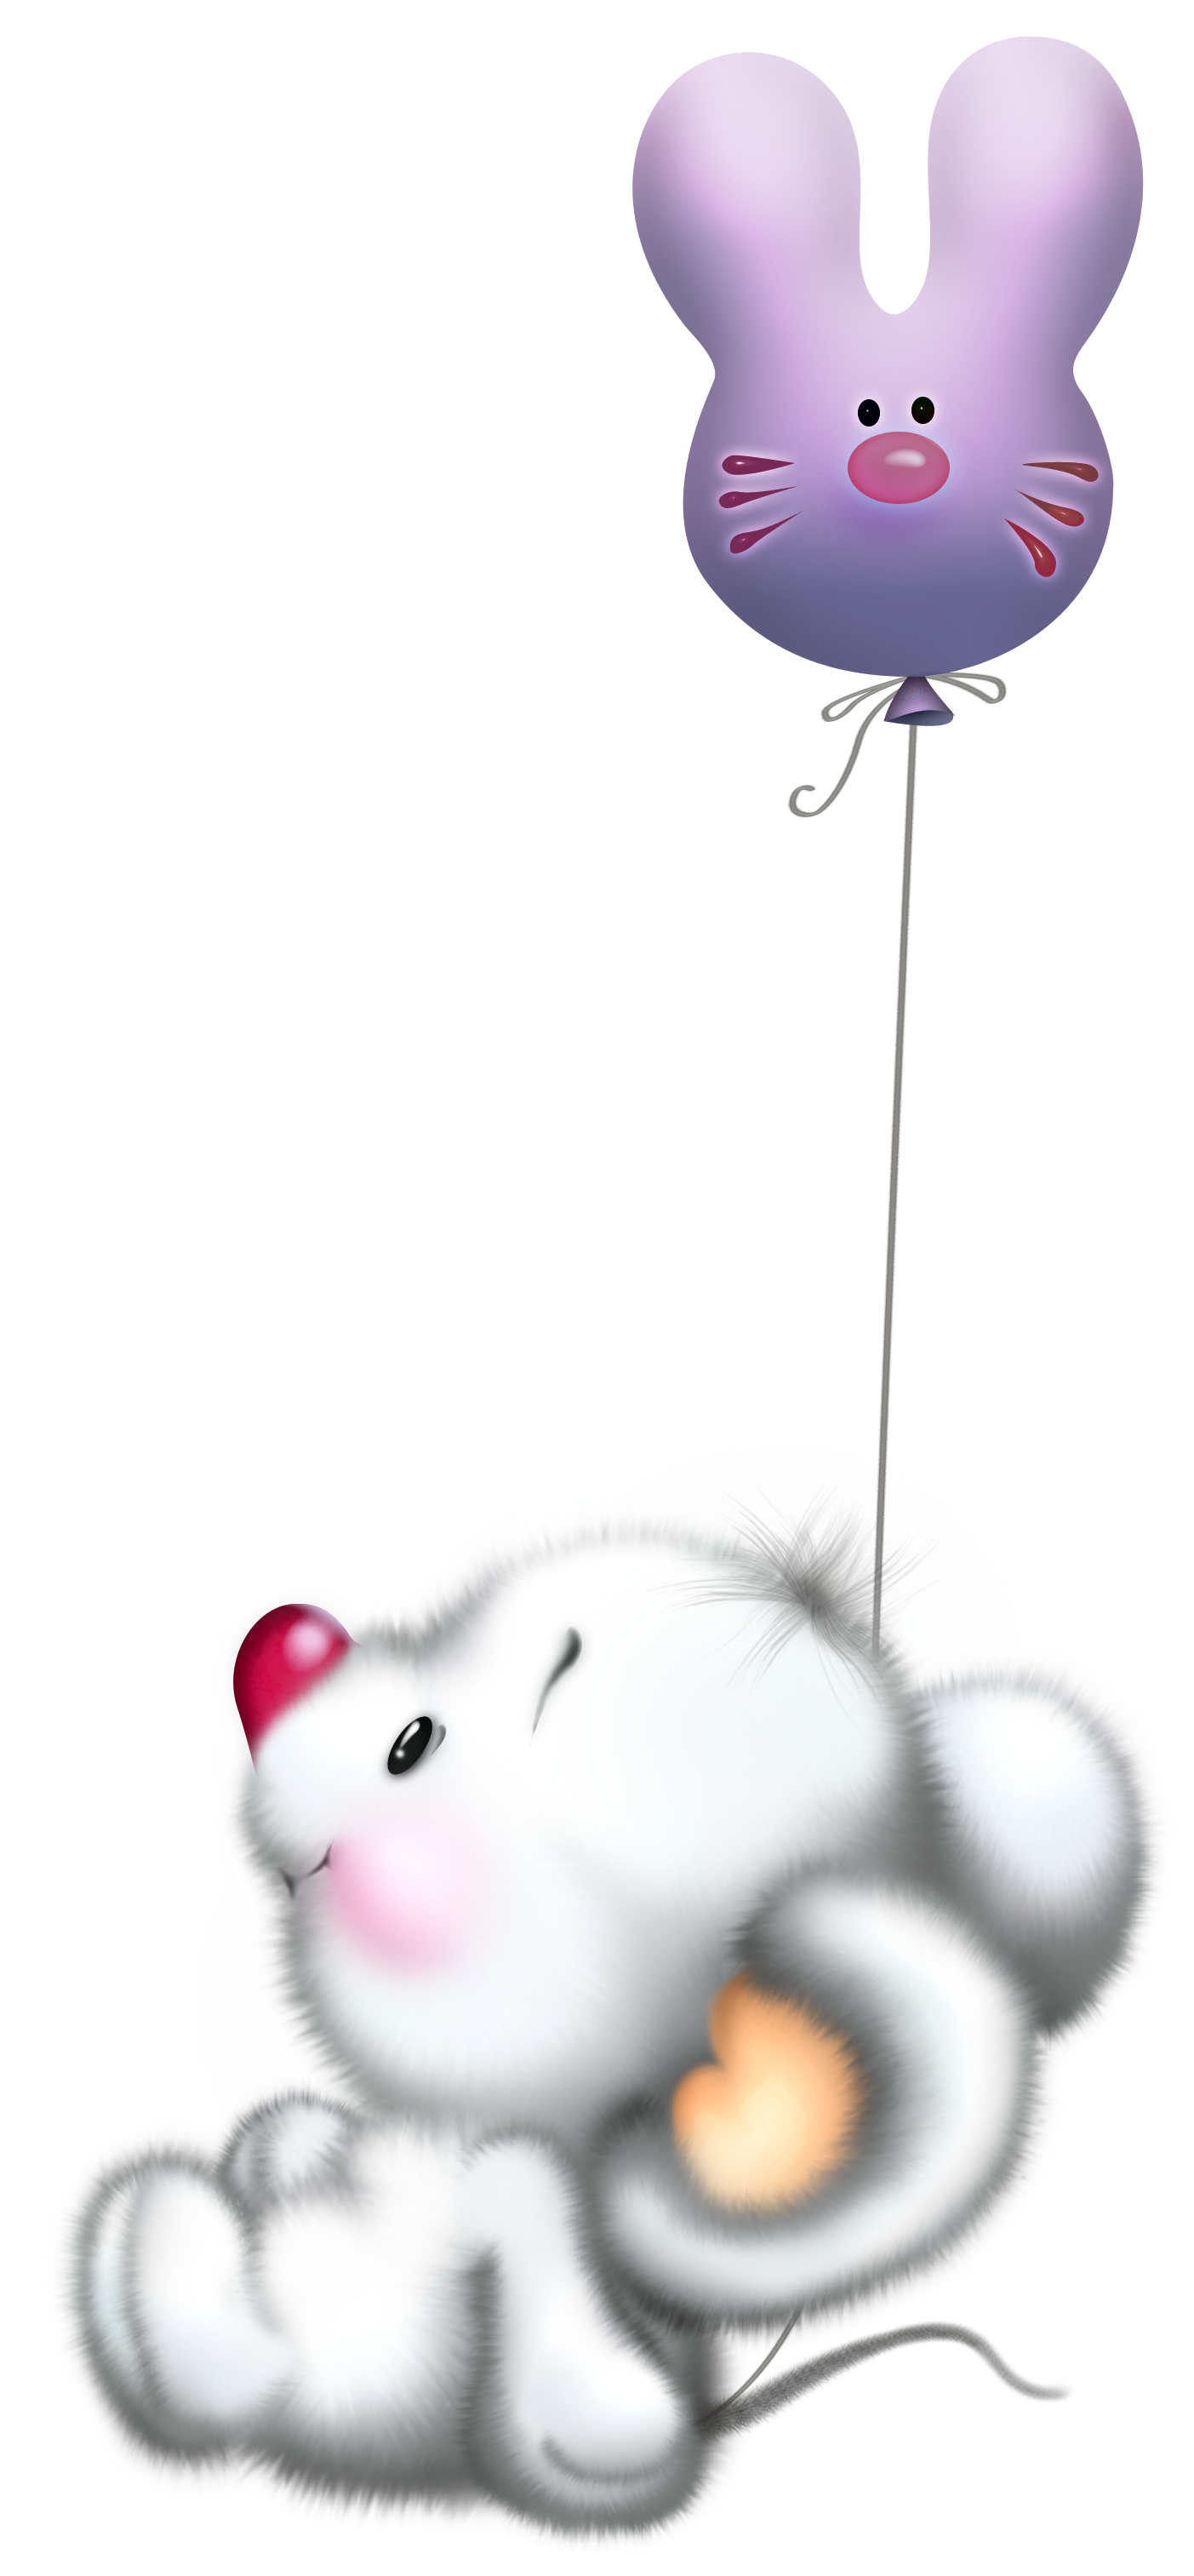 Cute white mouse with. Writer clipart unfinished work